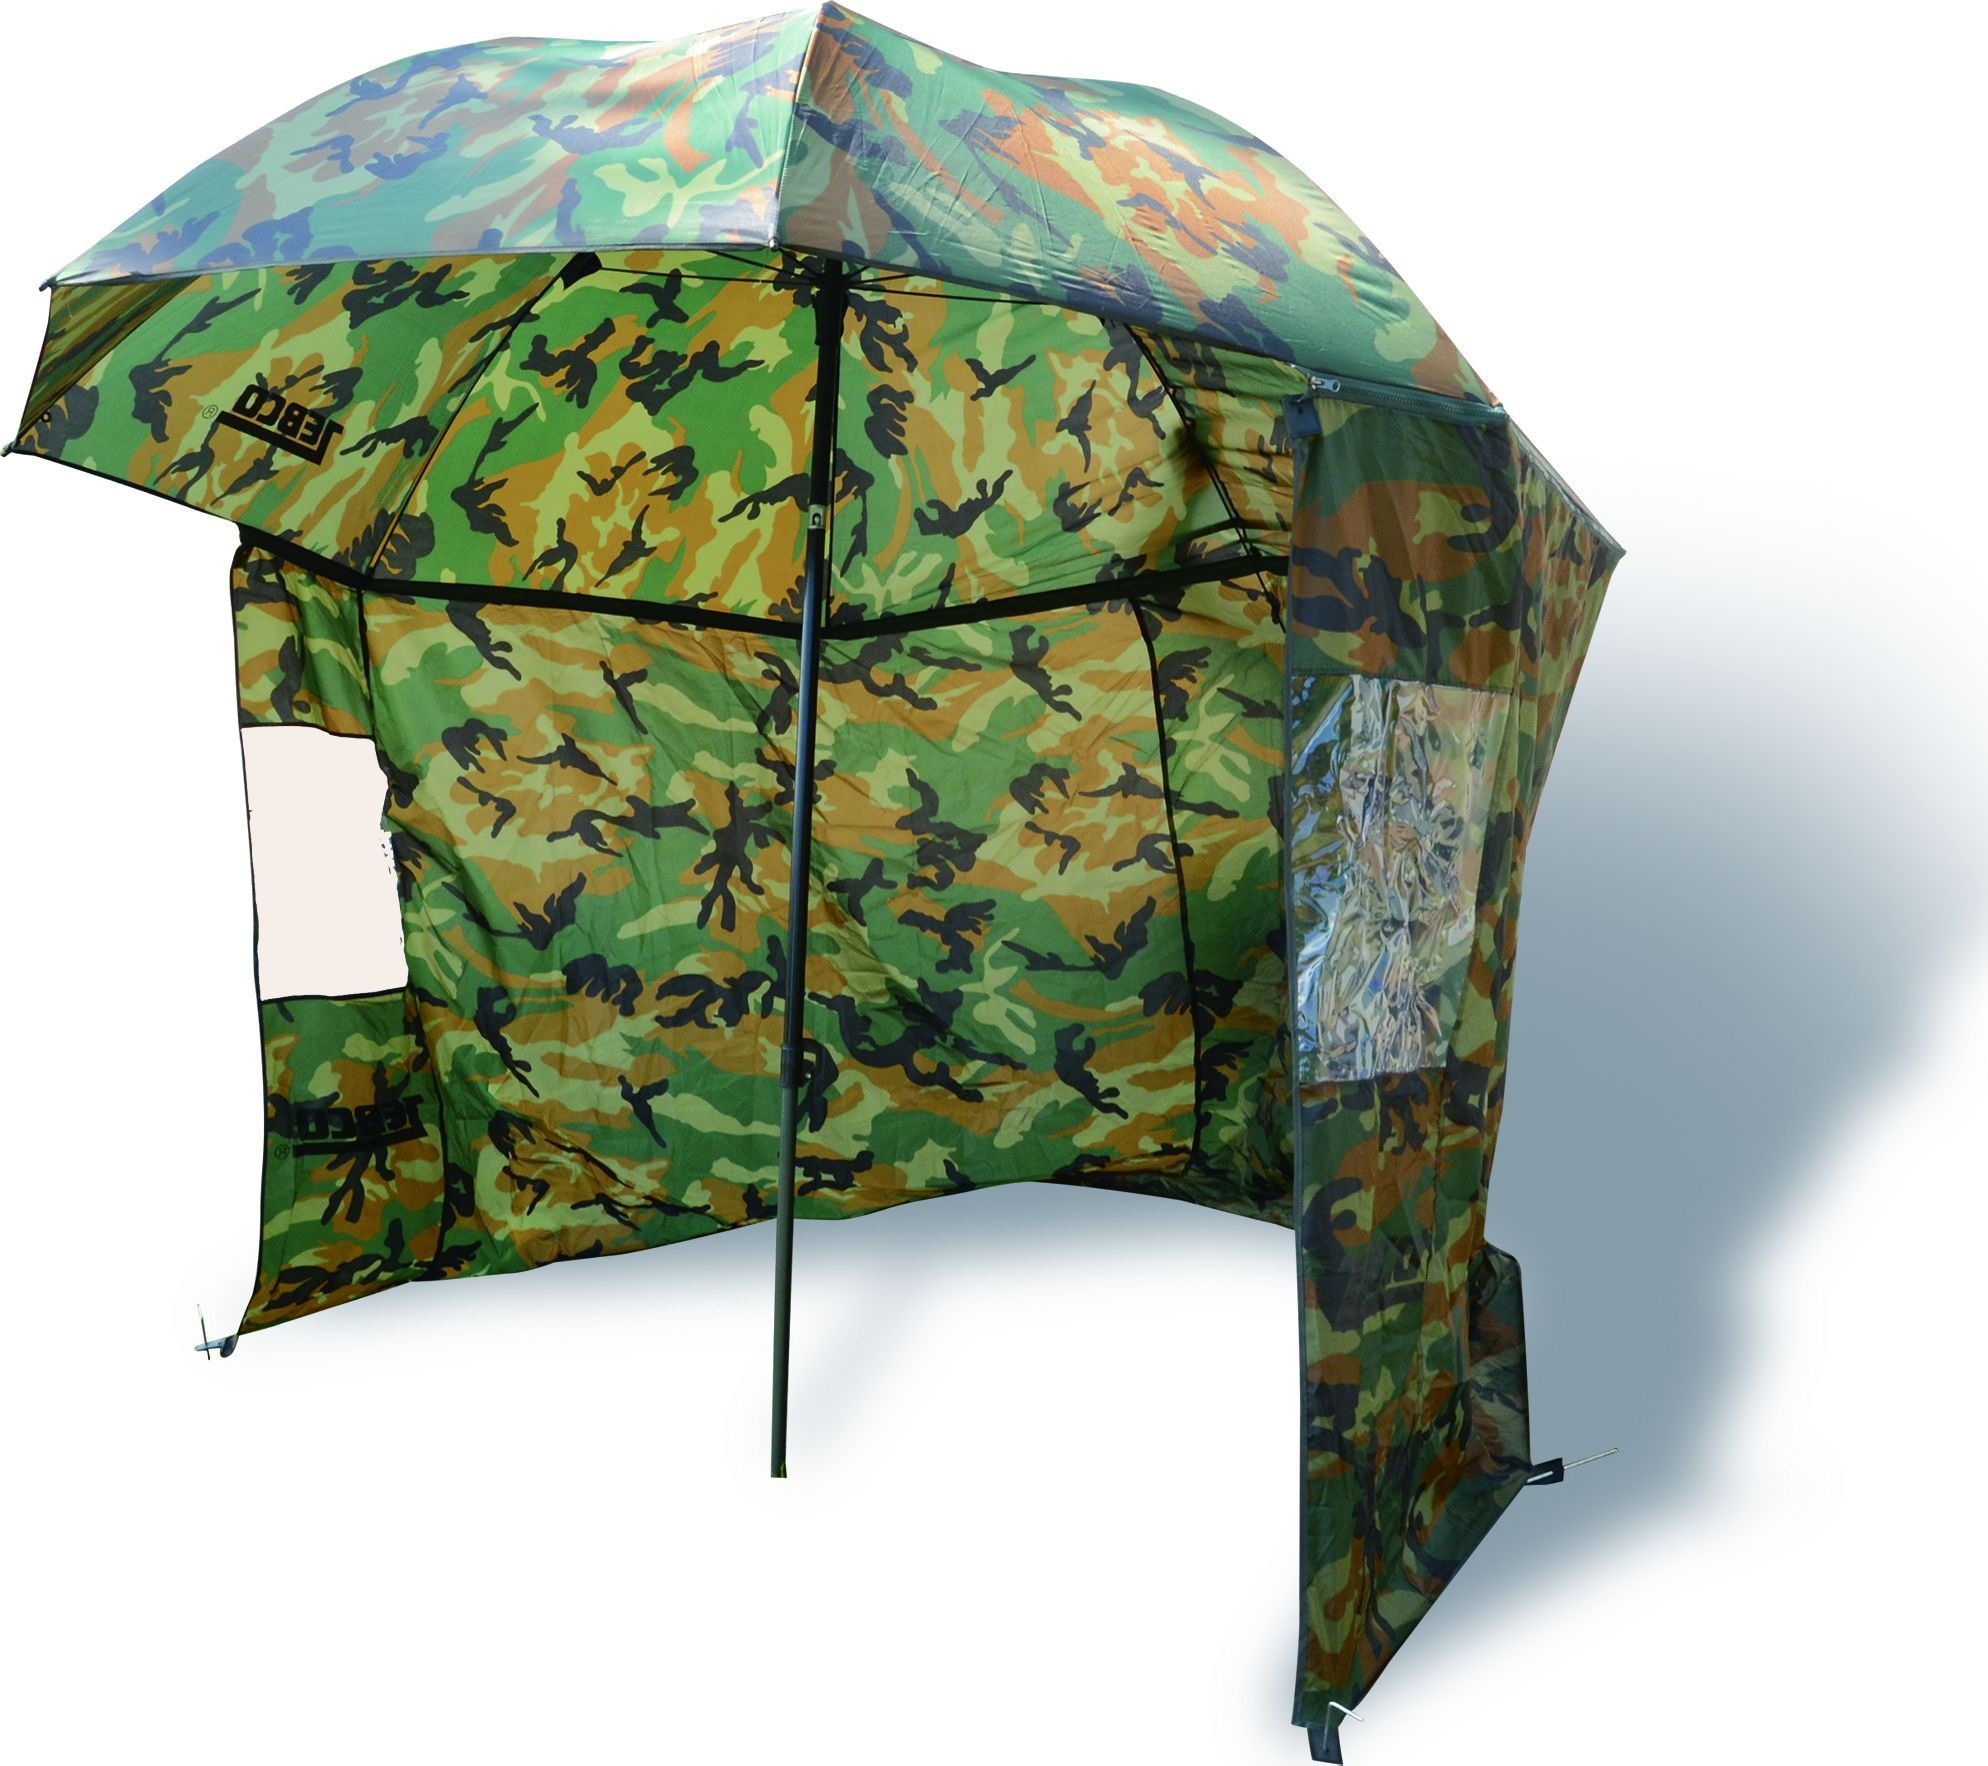 Zebco Umbrella with sides Camu Ø2,20m (9974253) Lietussargs